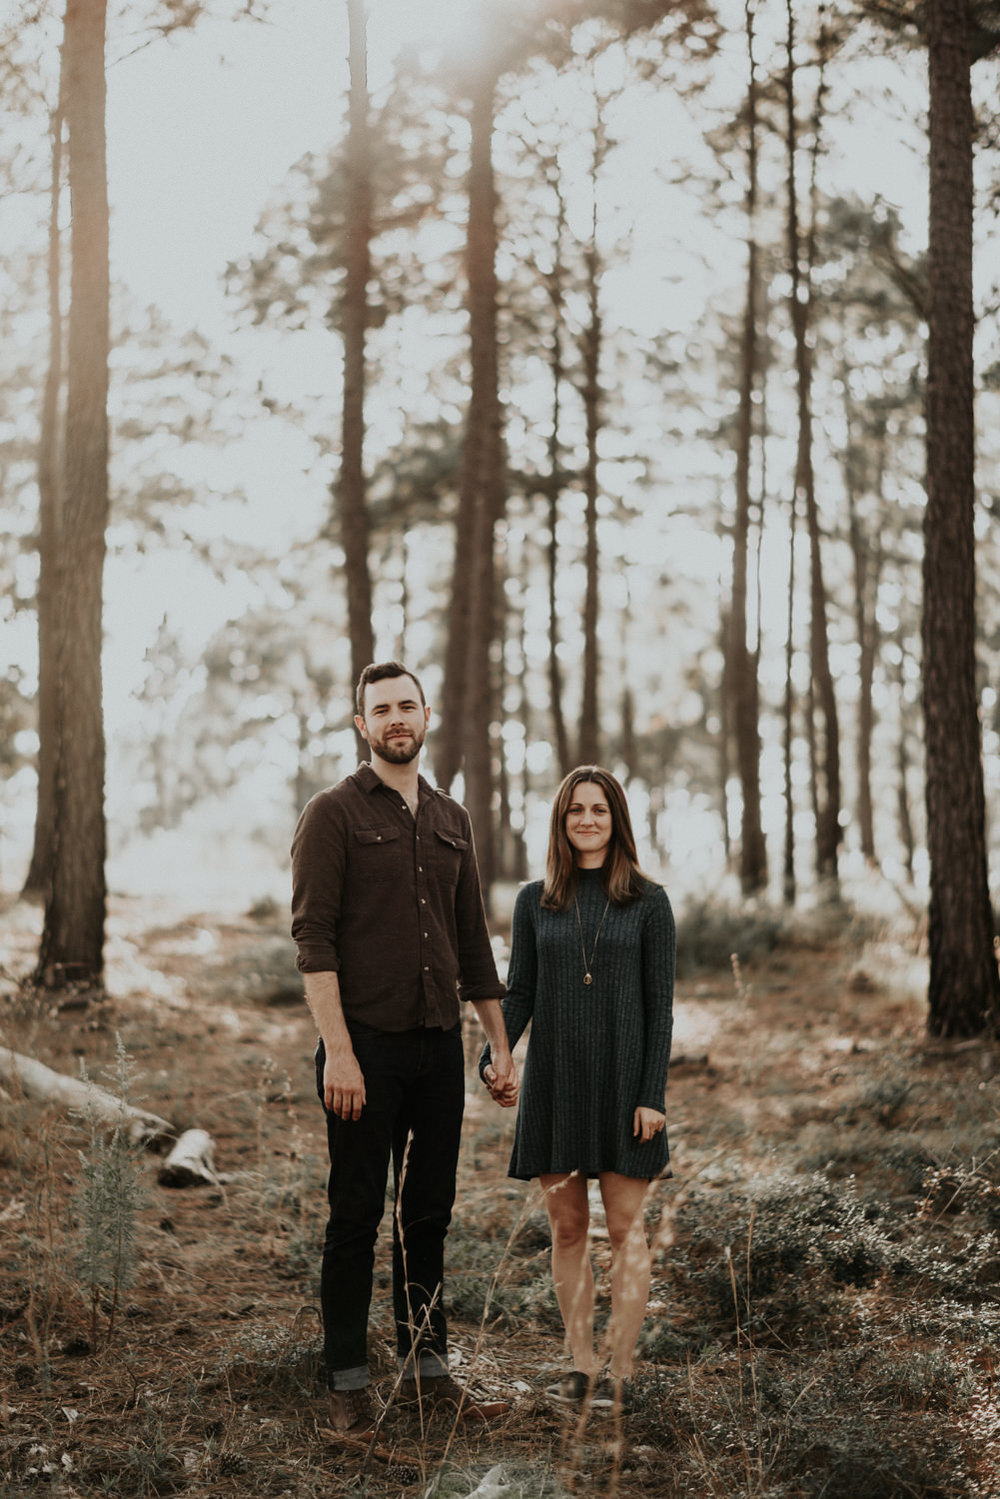 Lost Pines Engagement Session at Bastrop State Park